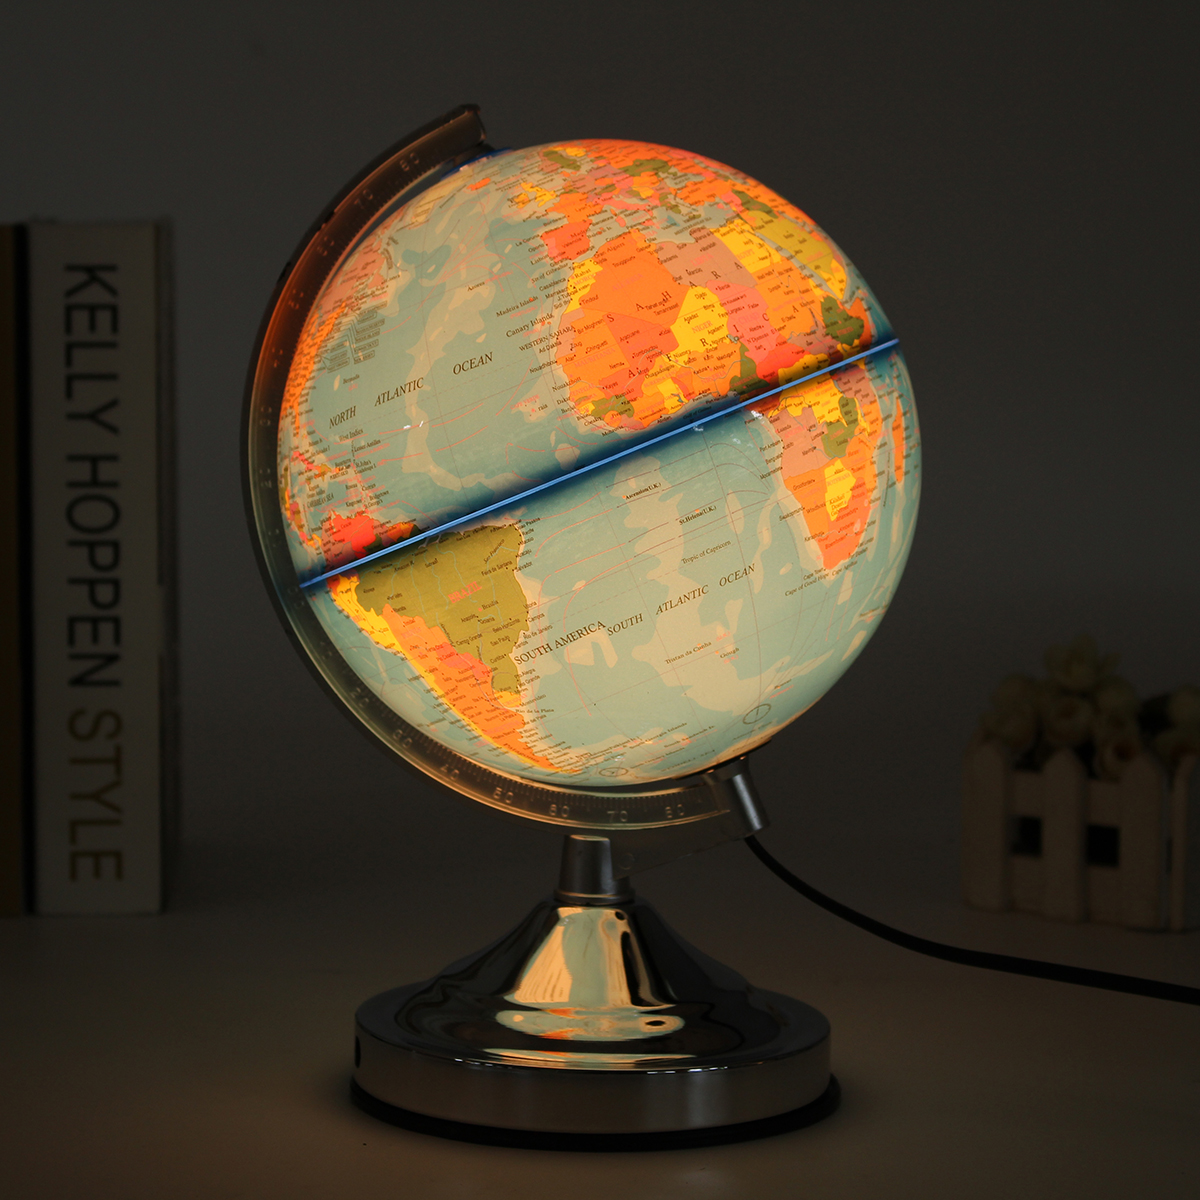 Geography Map Illuminated Blue Ocean World Earth for Home School Office EU Plug Globe Rotating With Night Light Desktop Decor 12 5 world earth globe map geography led illuminated for home office desktop decoration education toy kids gift